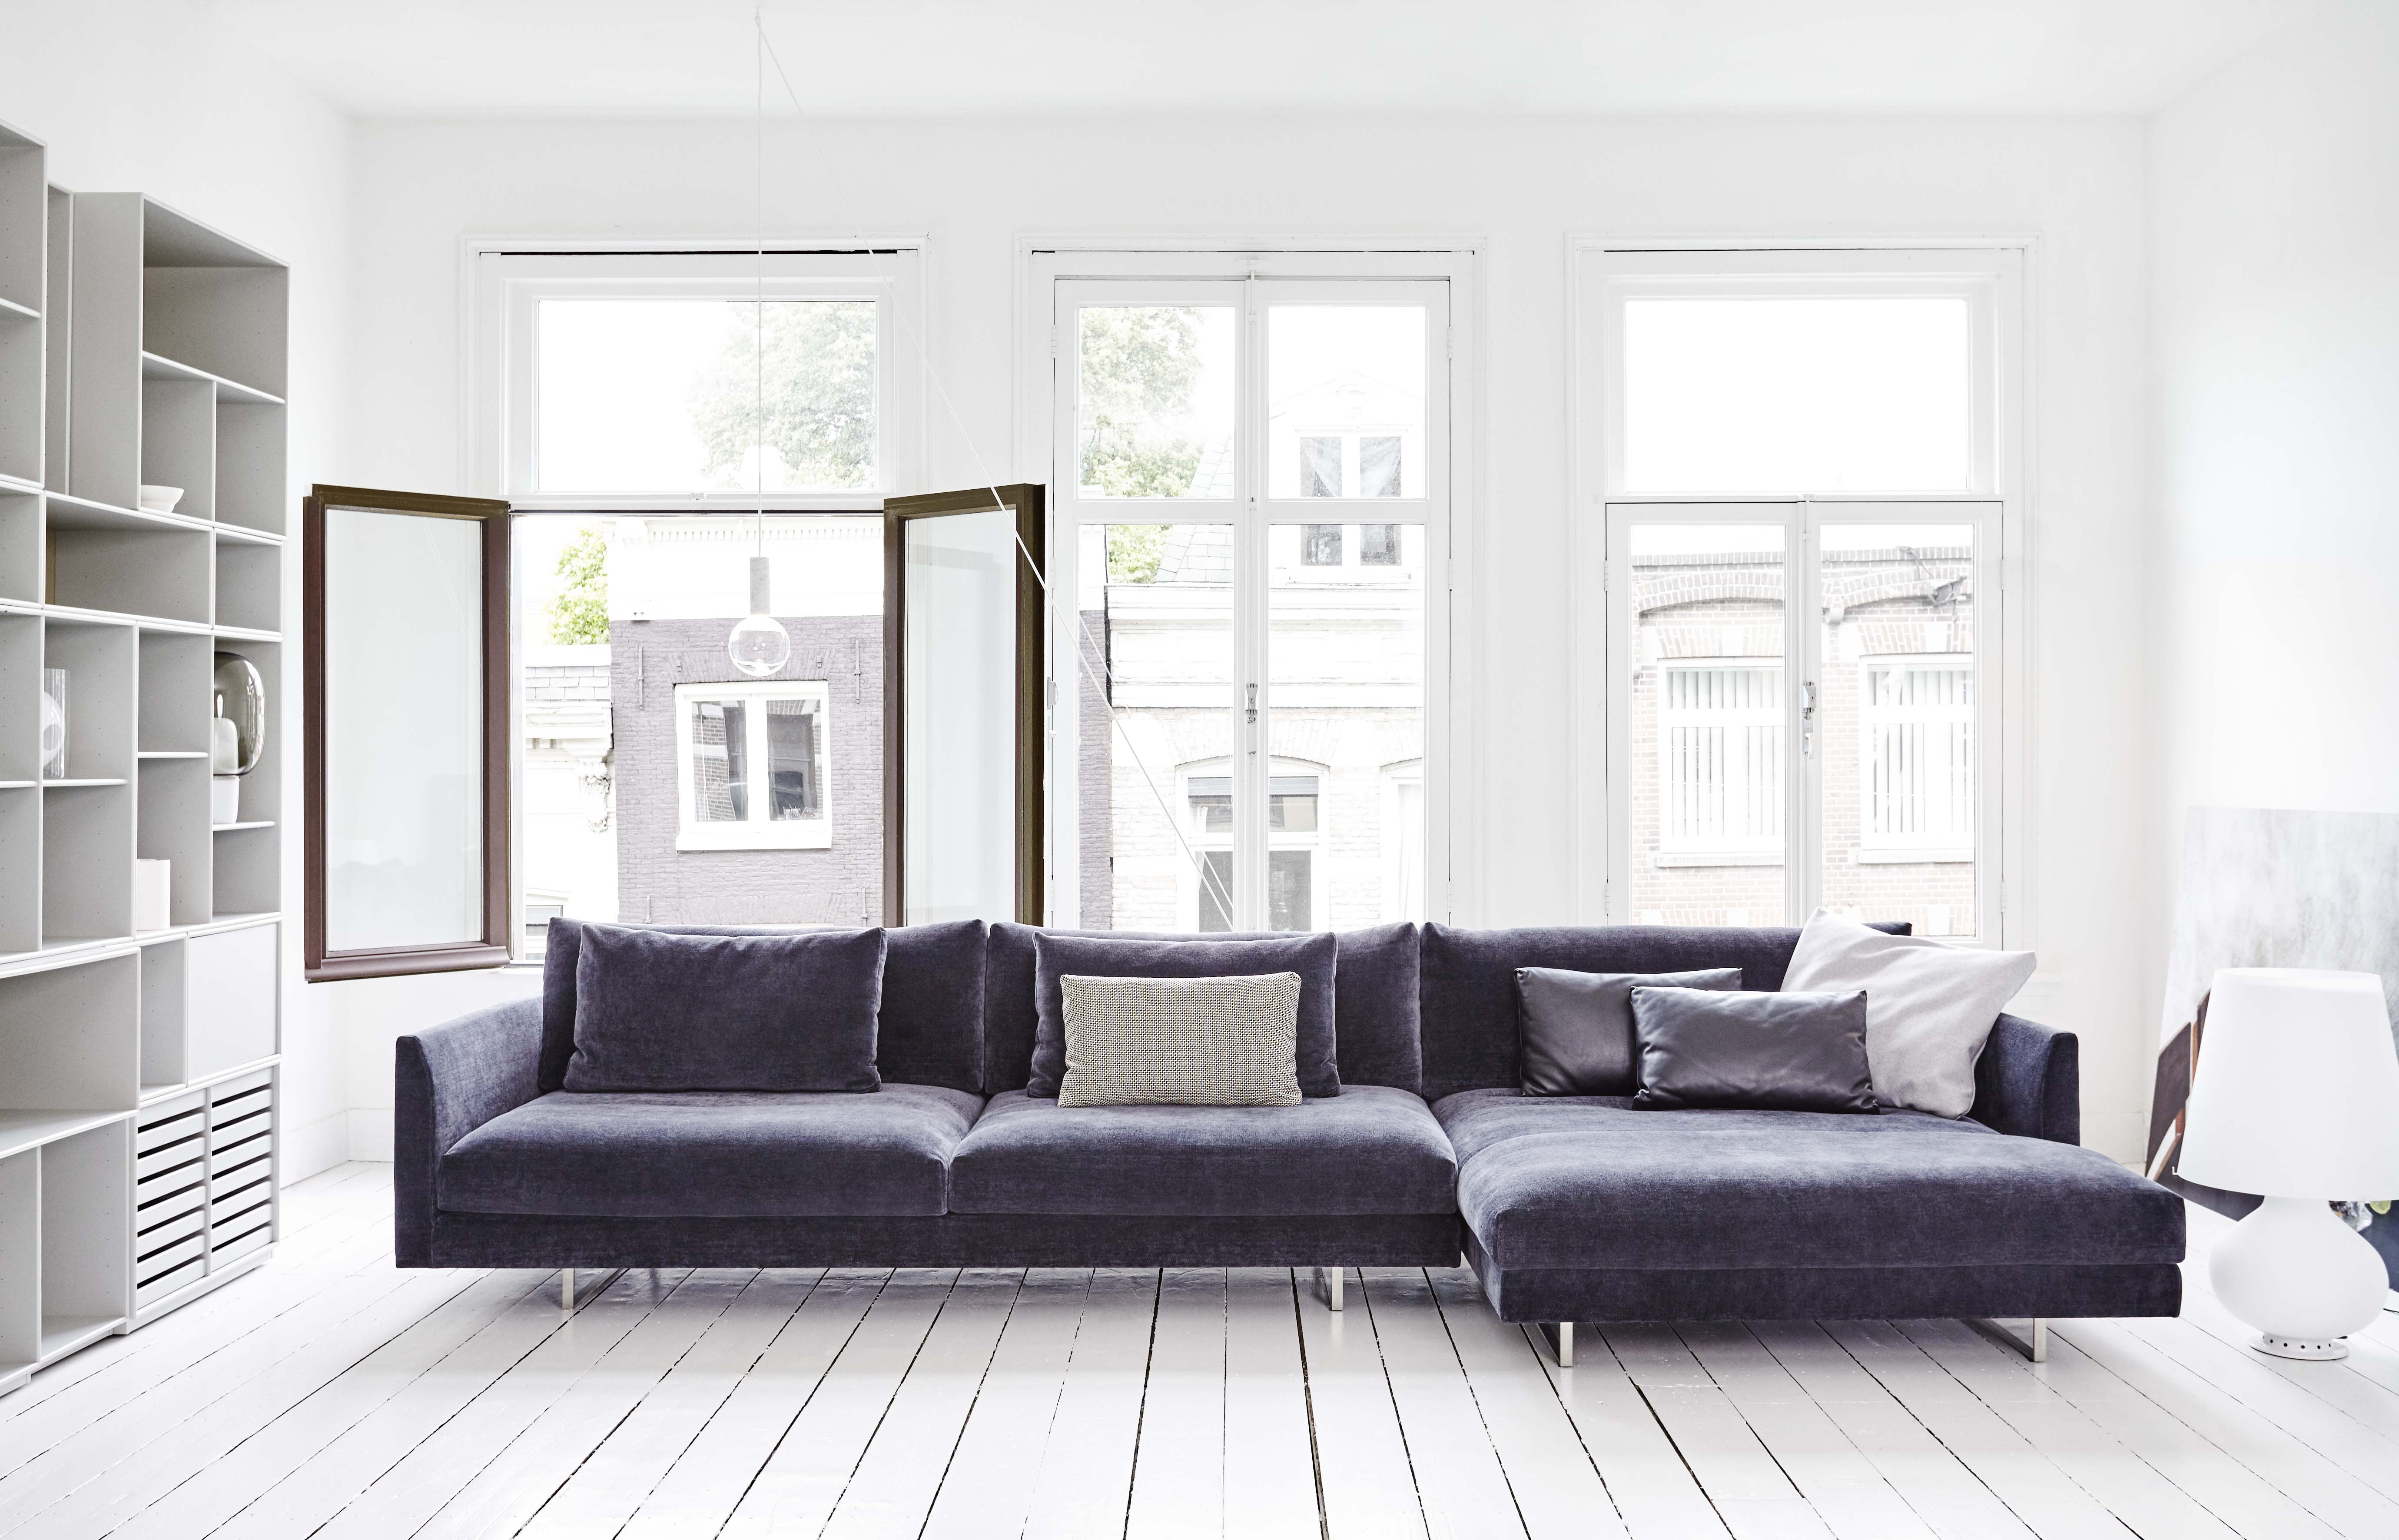 Design Bank Met Chaise Longue.Montis Axel Xl Bank Van Der Donk Interieur